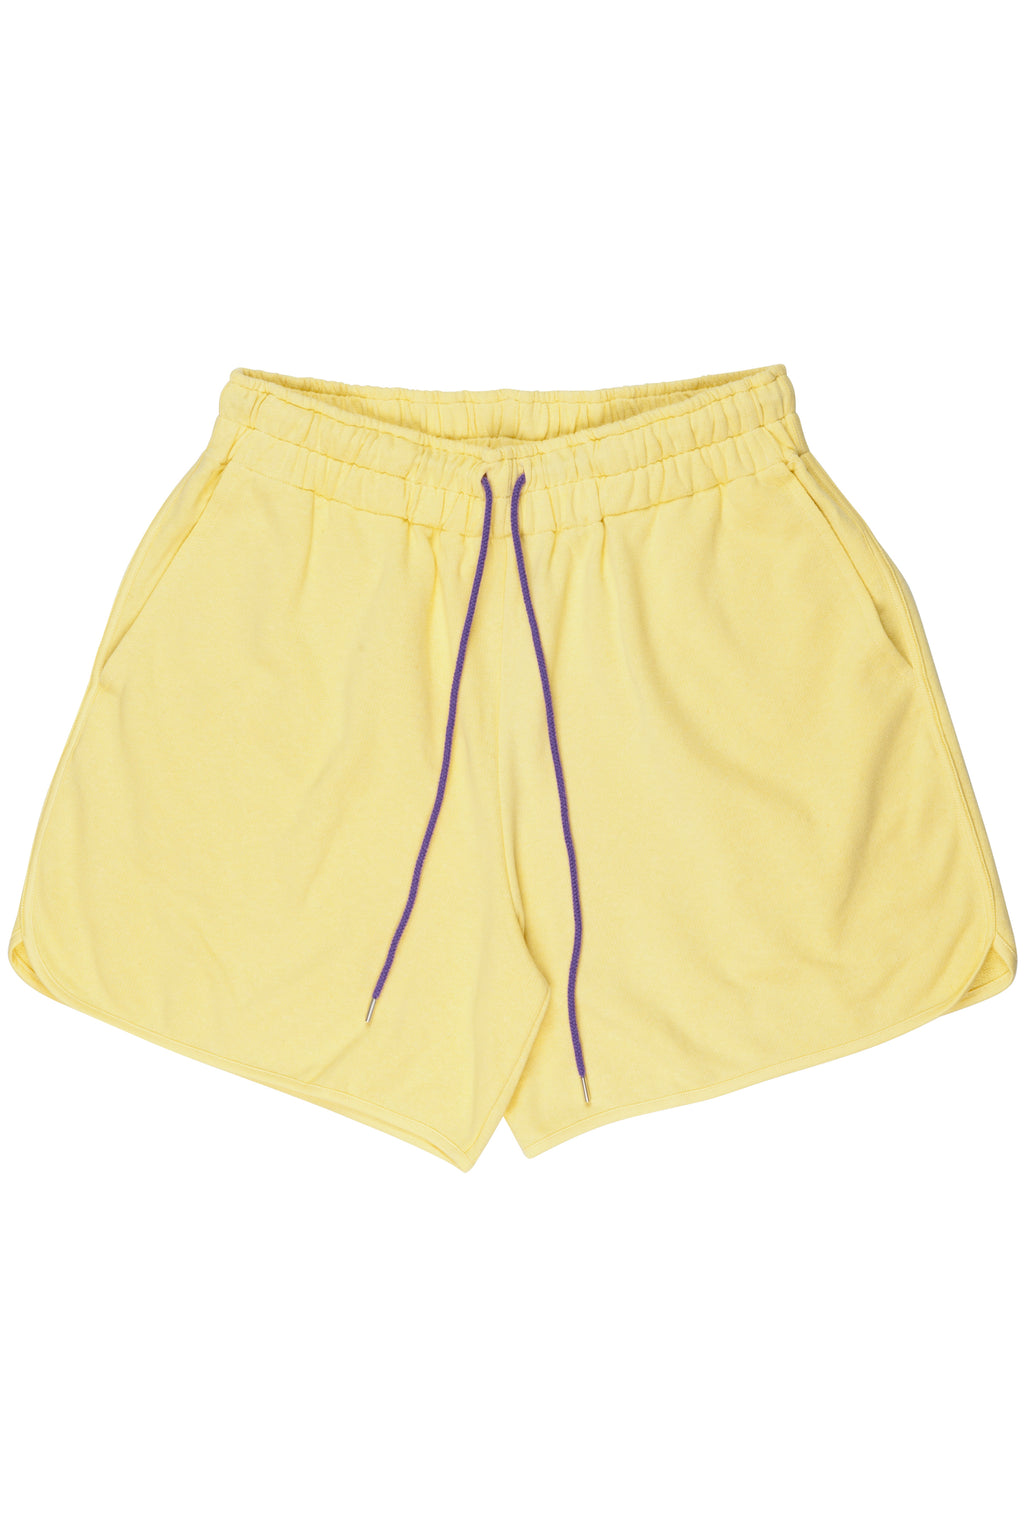 Banana Yellow sweat shorts from menswear brand Martin Asbjørn